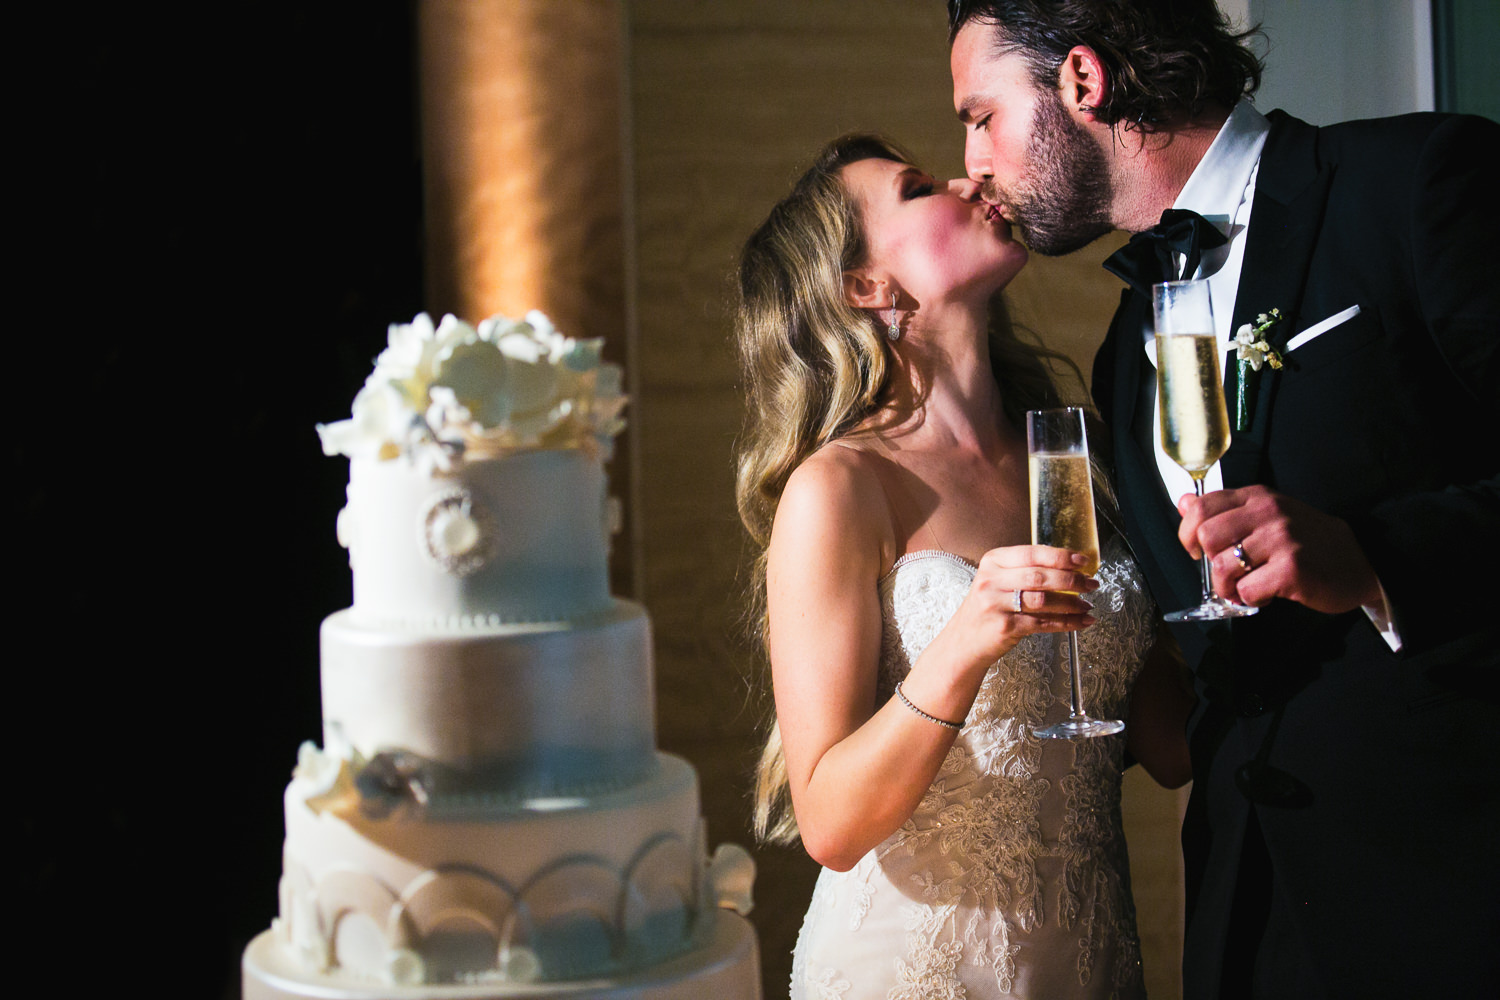 Four Seasons Santa Barbara Wedding - Newly Weds Kissing With Champagne By Cake